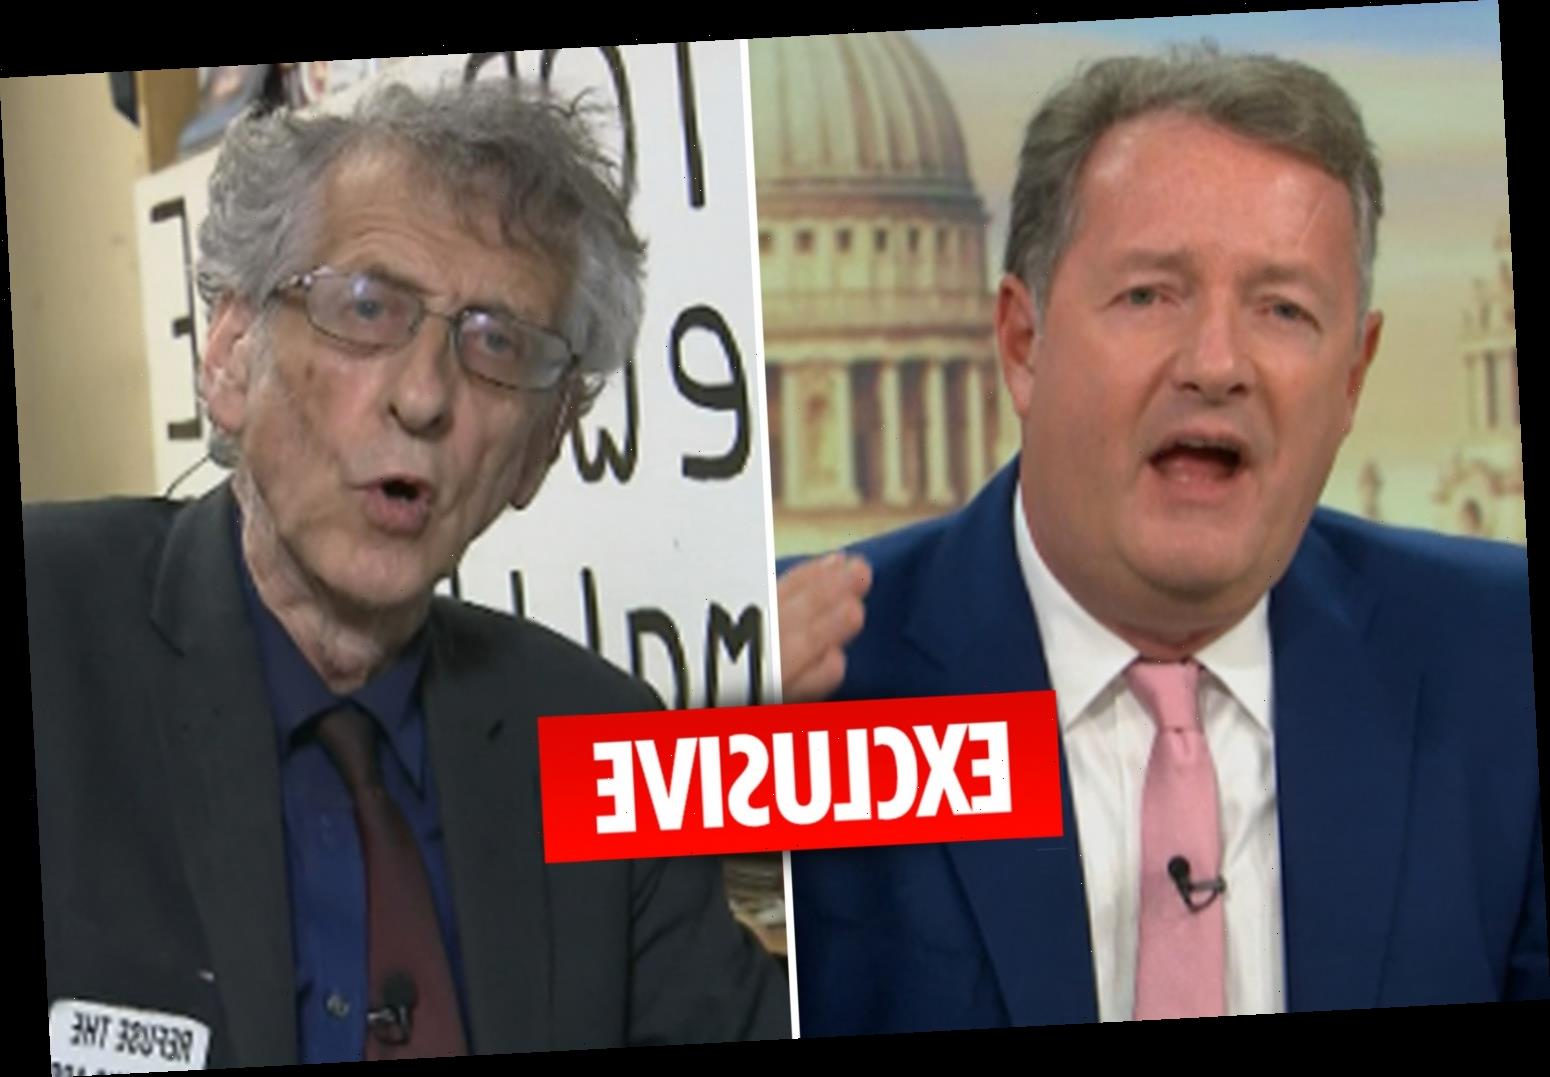 GMB hit with 128 Ofcom complaints after Piers Morgan's explosive row with coronavirus 'whackjob' denier Piers Corbyn